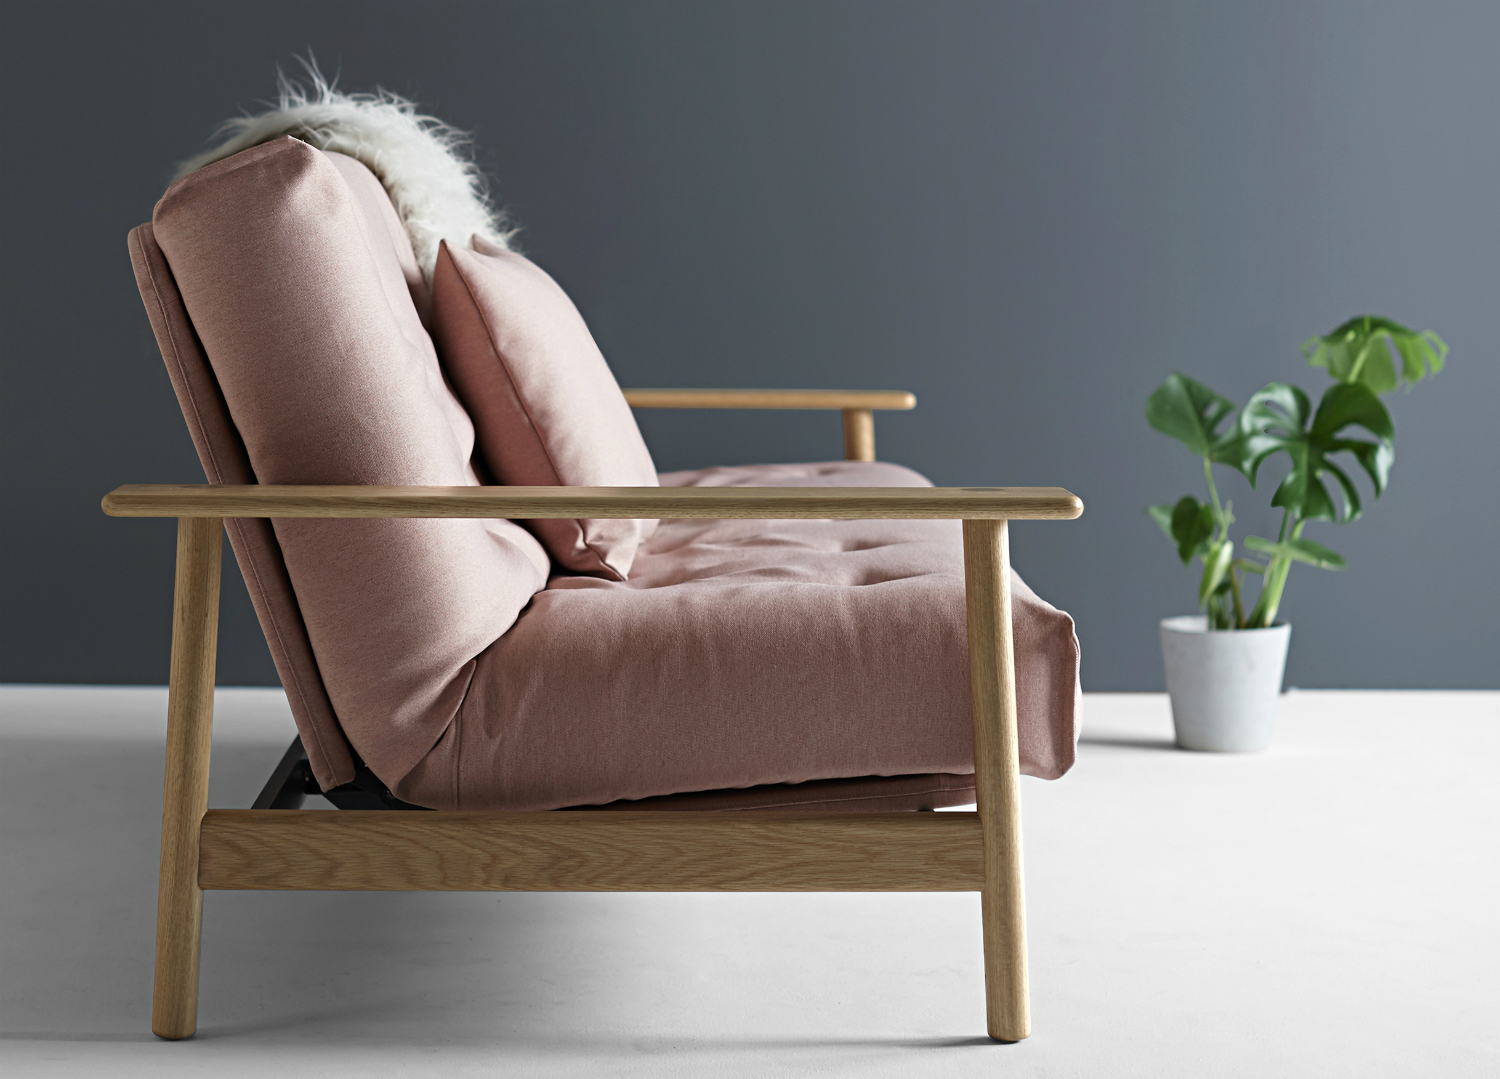 Balder innovation living melbourne for Edit 03 sofa